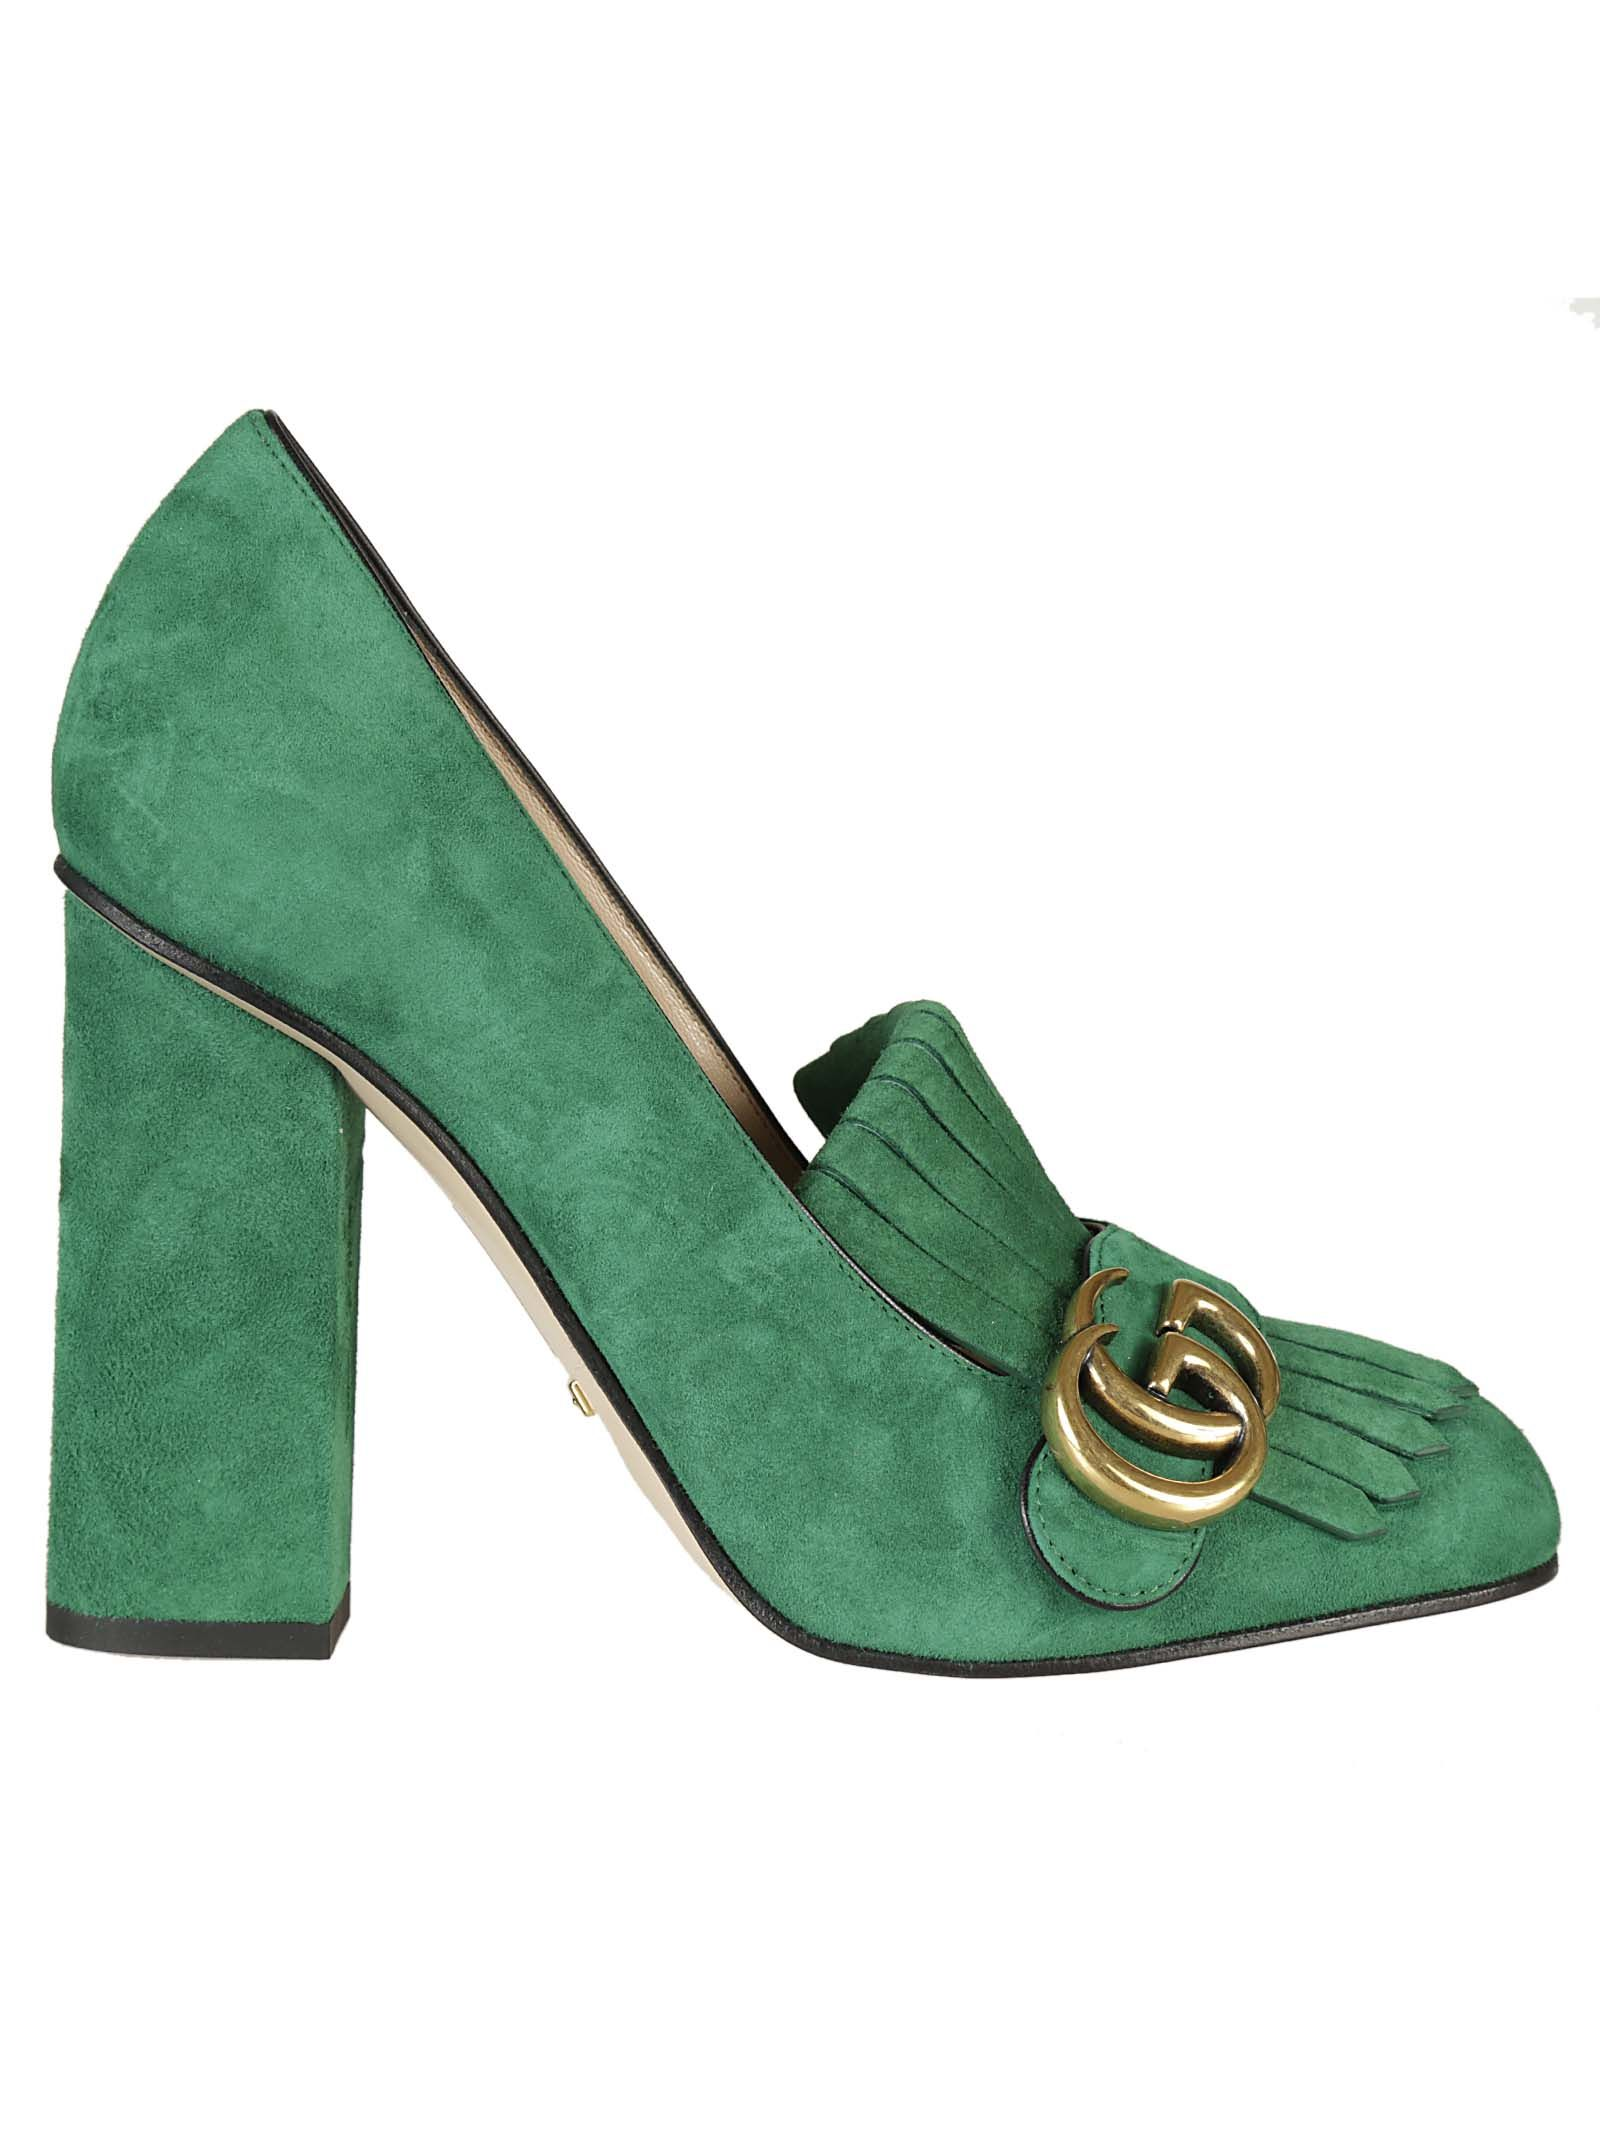 gucci gucci suede pumps green women 39 s high heeled shoes italist. Black Bedroom Furniture Sets. Home Design Ideas